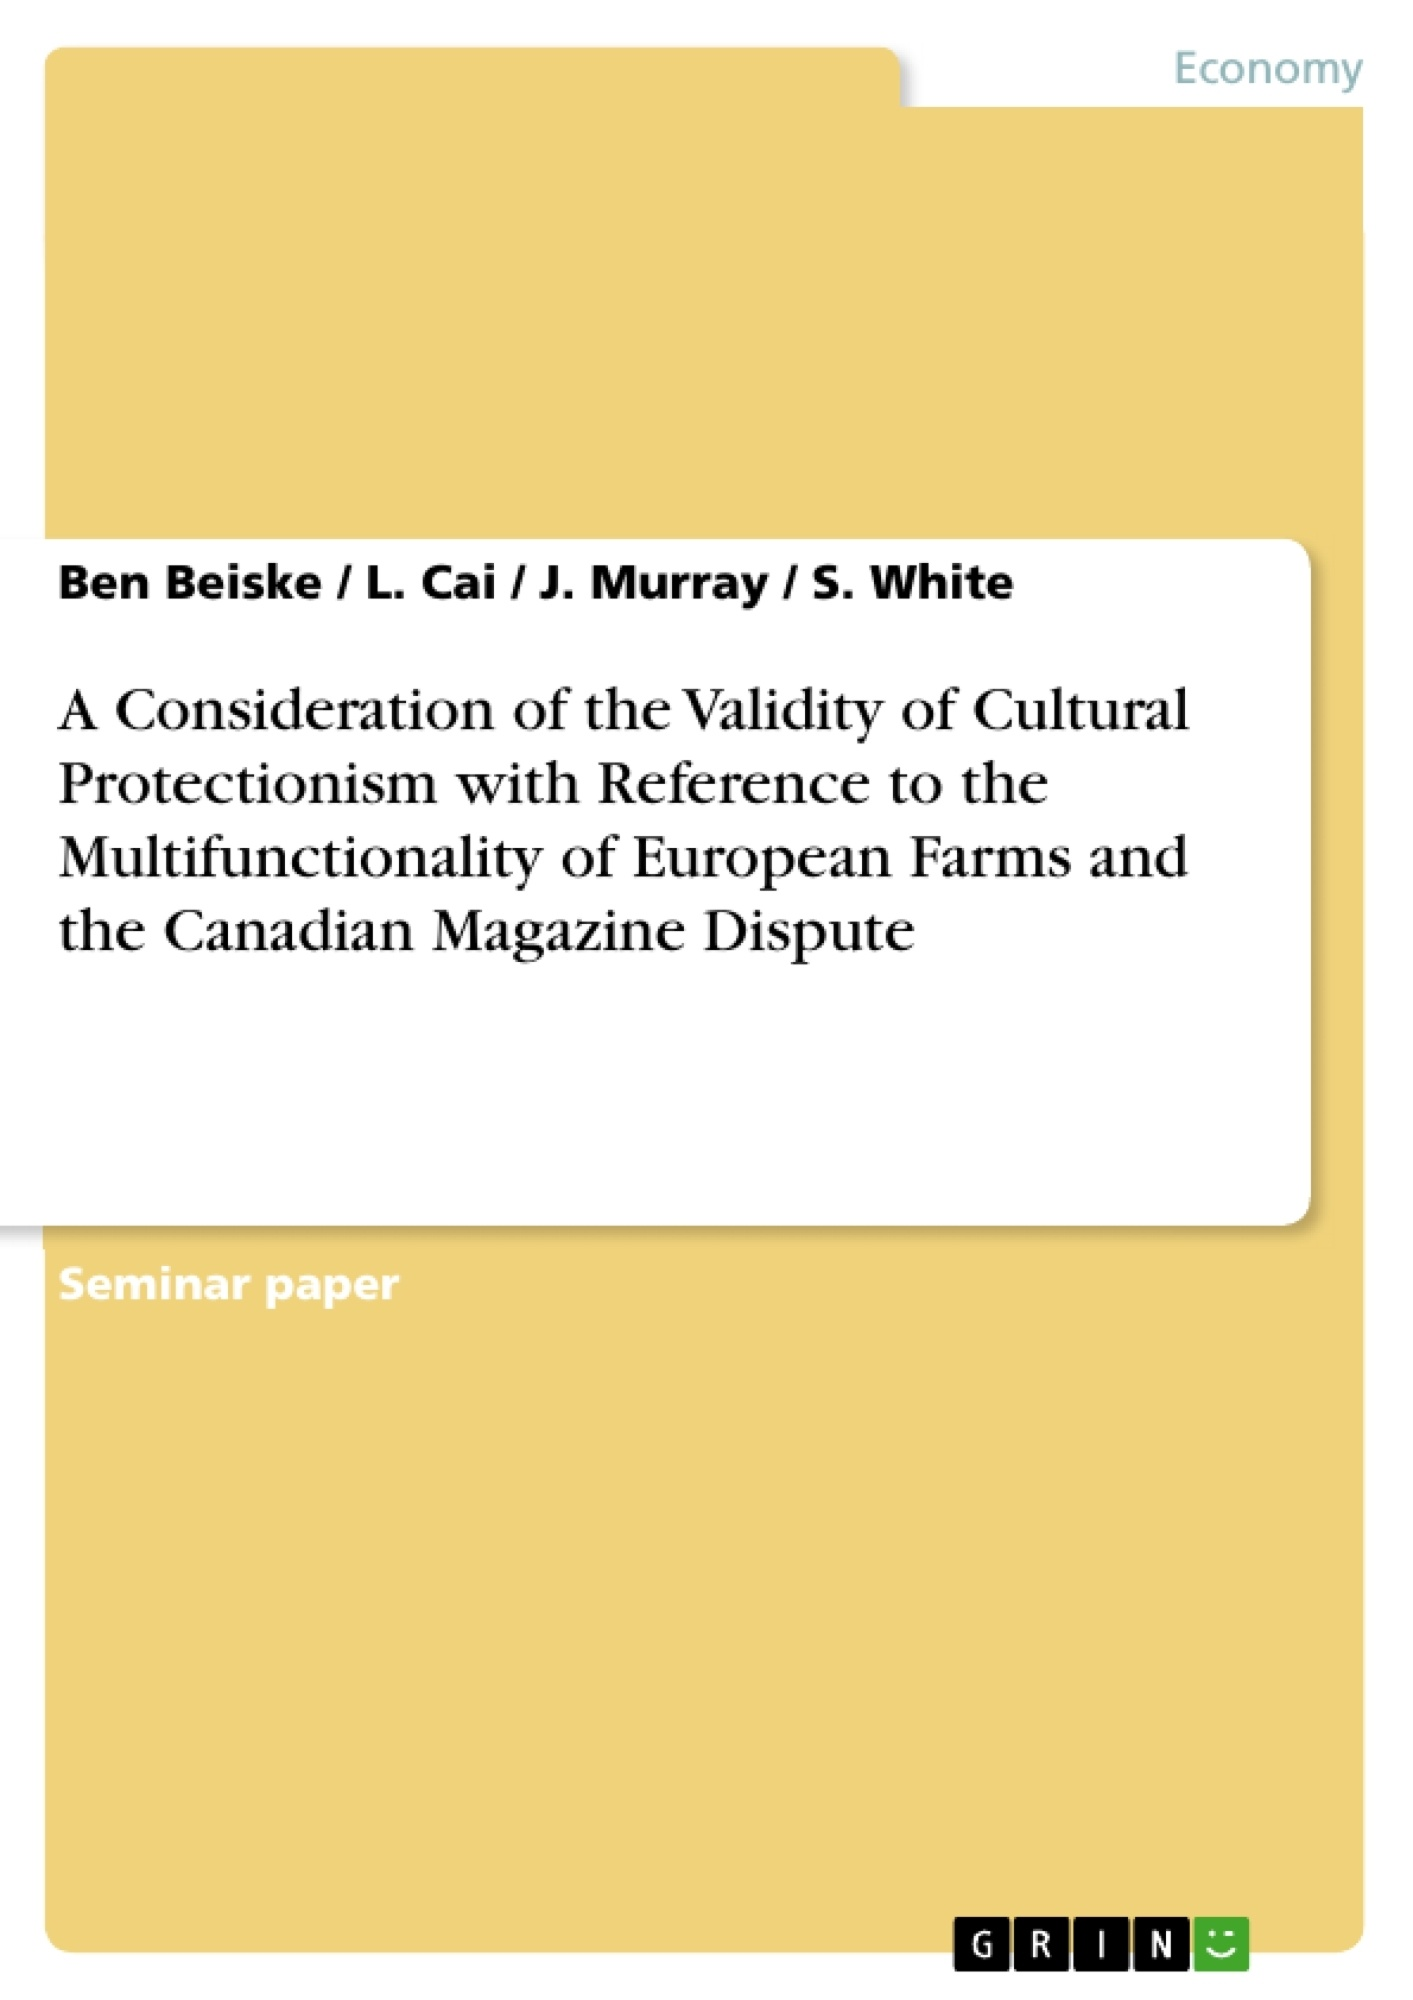 Title: A Consideration of the Validity of Cultural Protectionism with Reference to the Multifunctionality of European Farms and the Canadian Magazine Dispute